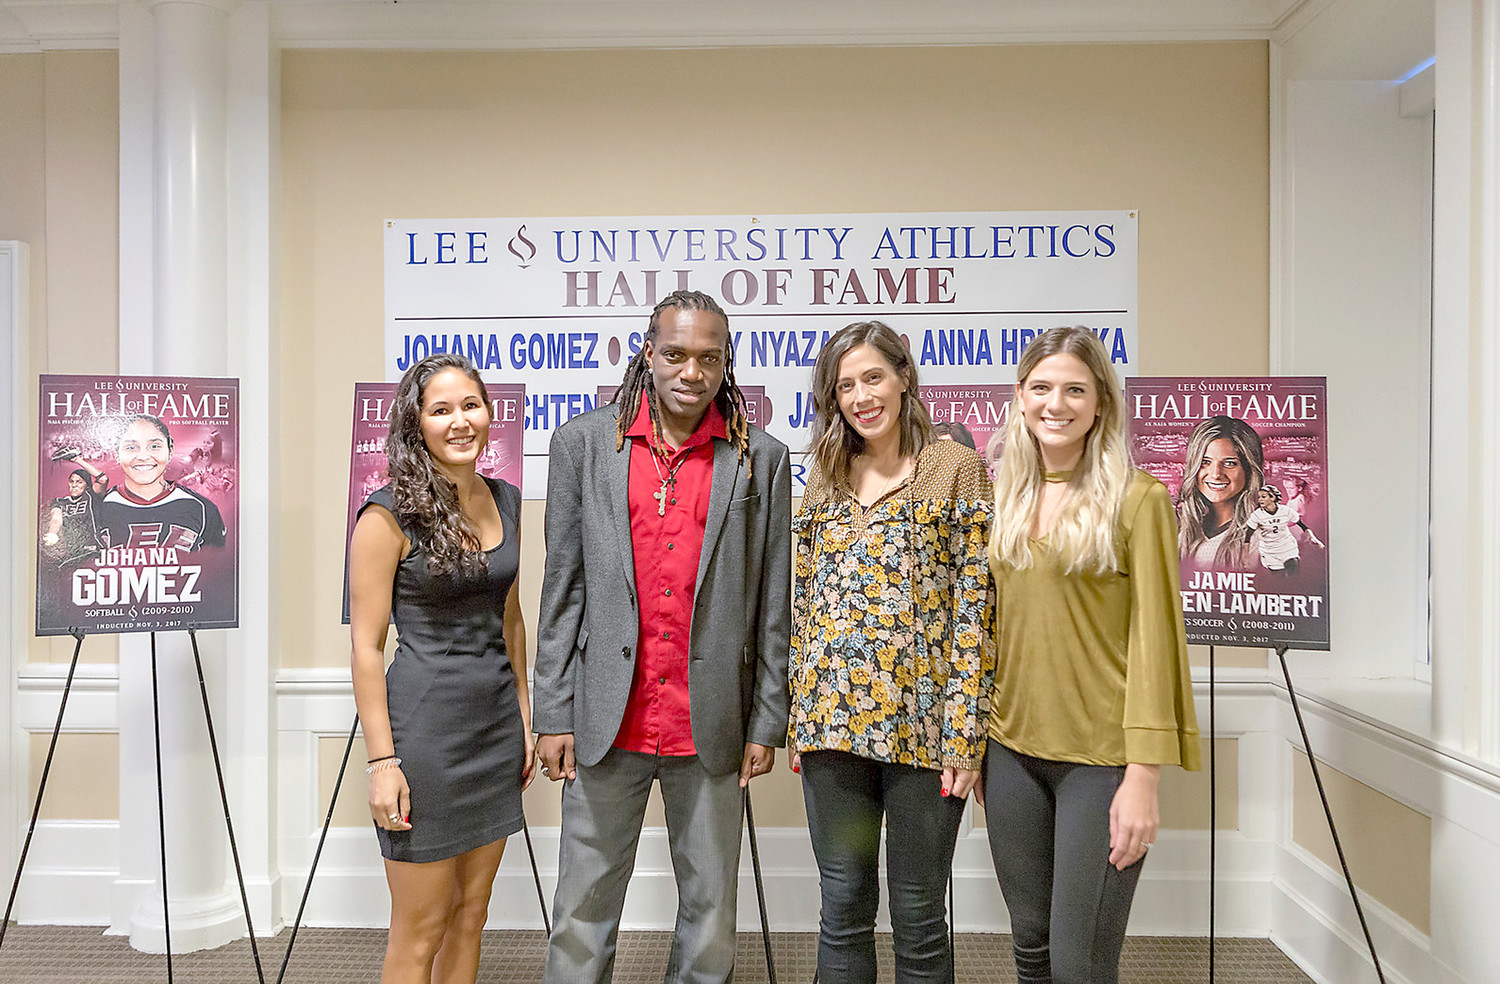 THE LEE University athletic department recently inducted five new members into its Hall of Fame. From left are Anna Hrushka (cross country/track), Stanley Nyazamba (soccer), Jenna Achten Sullivan (soccer) and Jamie Achten Lambert (soccer). Not pictured is Johana Gomez (softball).